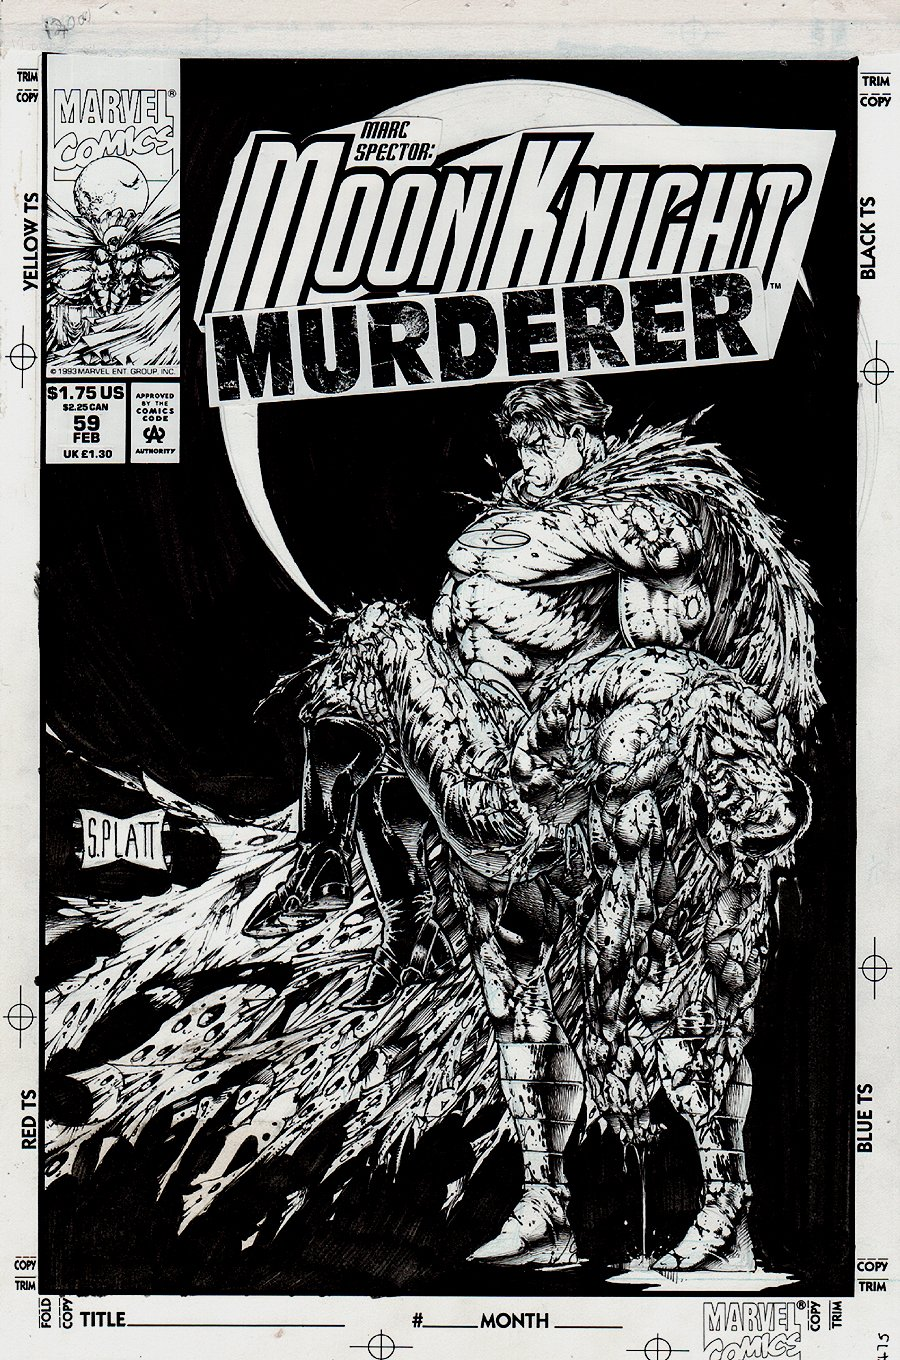 Moon Knight #59 Cover (1994)